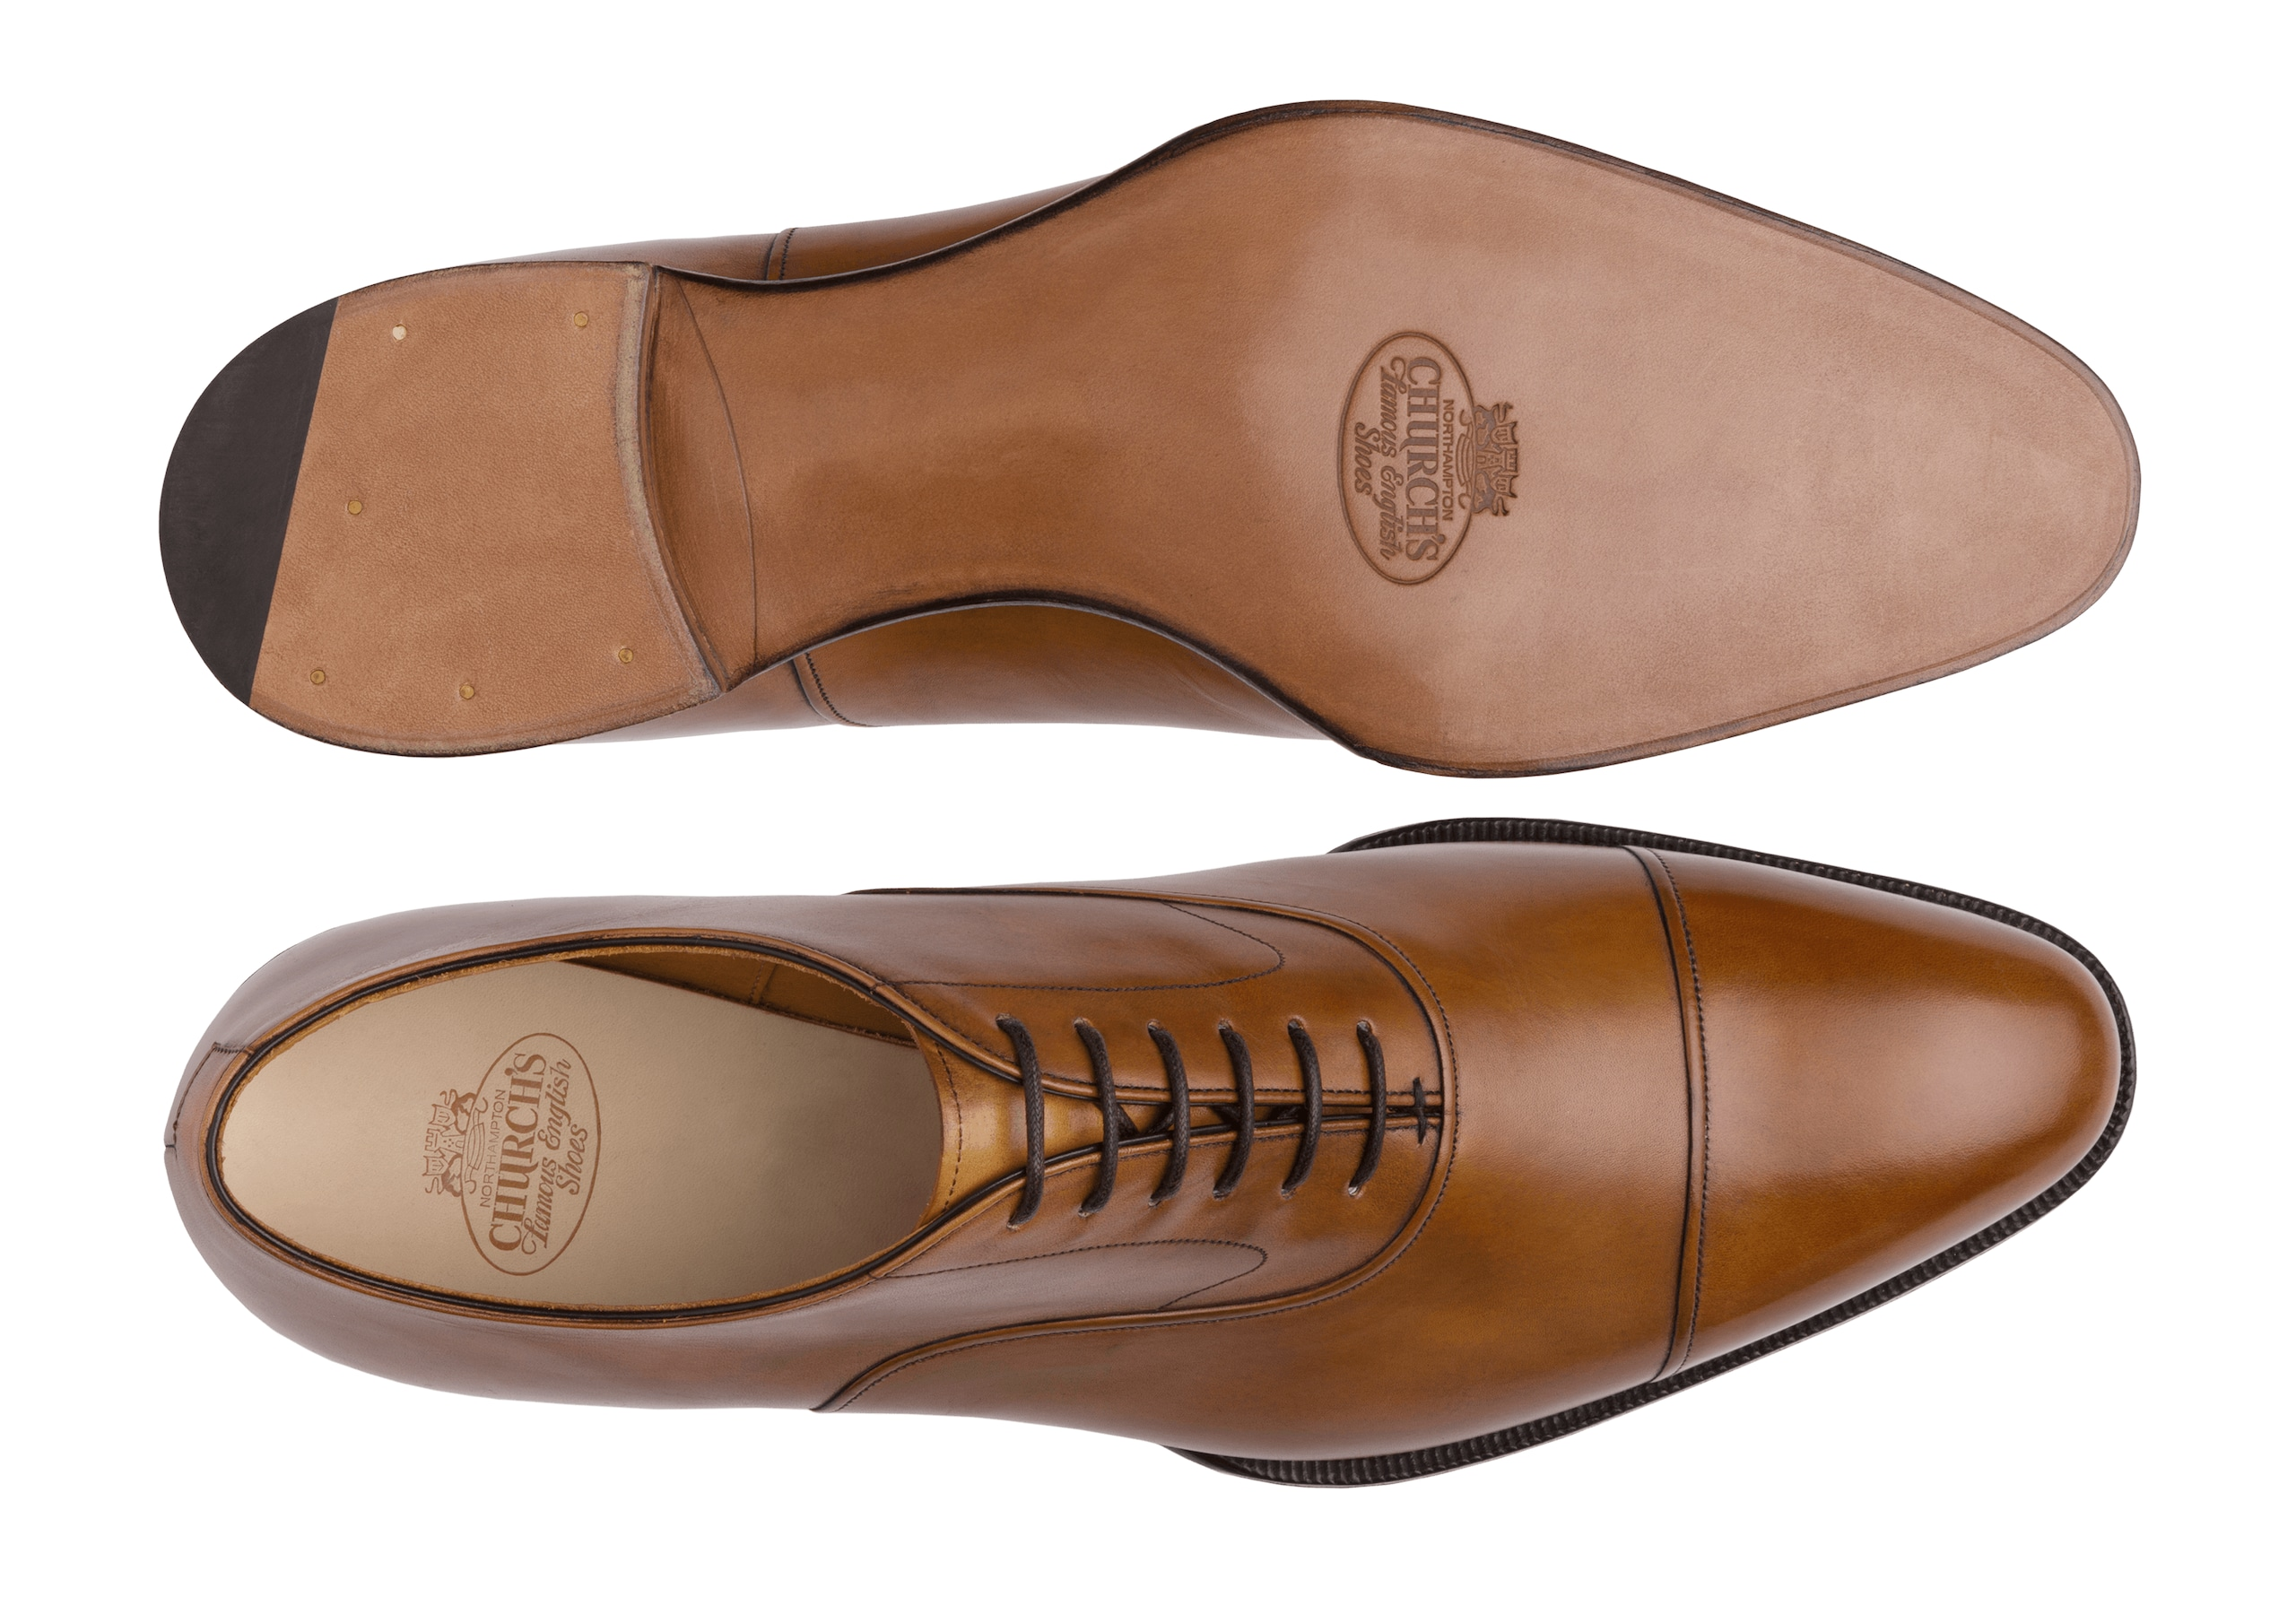 Barnes Church's Oxford in Pelle Masai Marrone